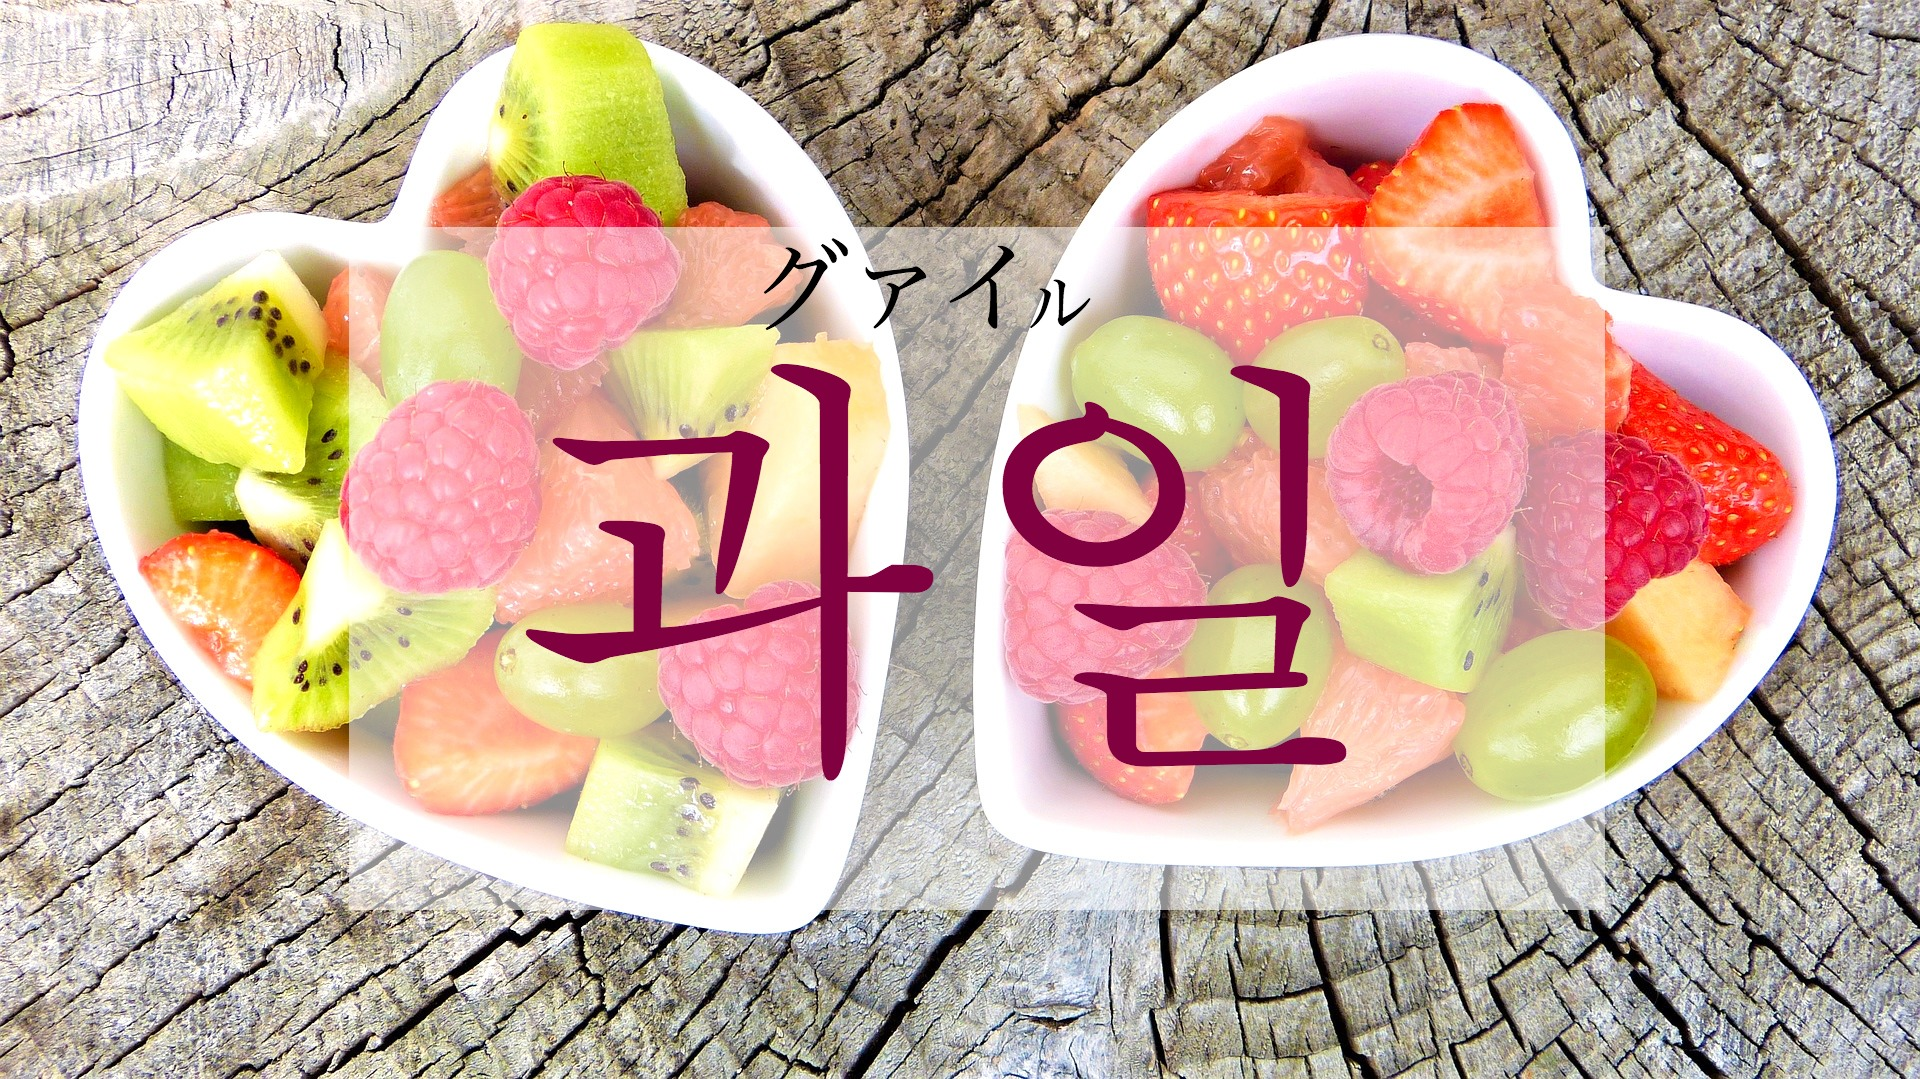 koreanword-fruits